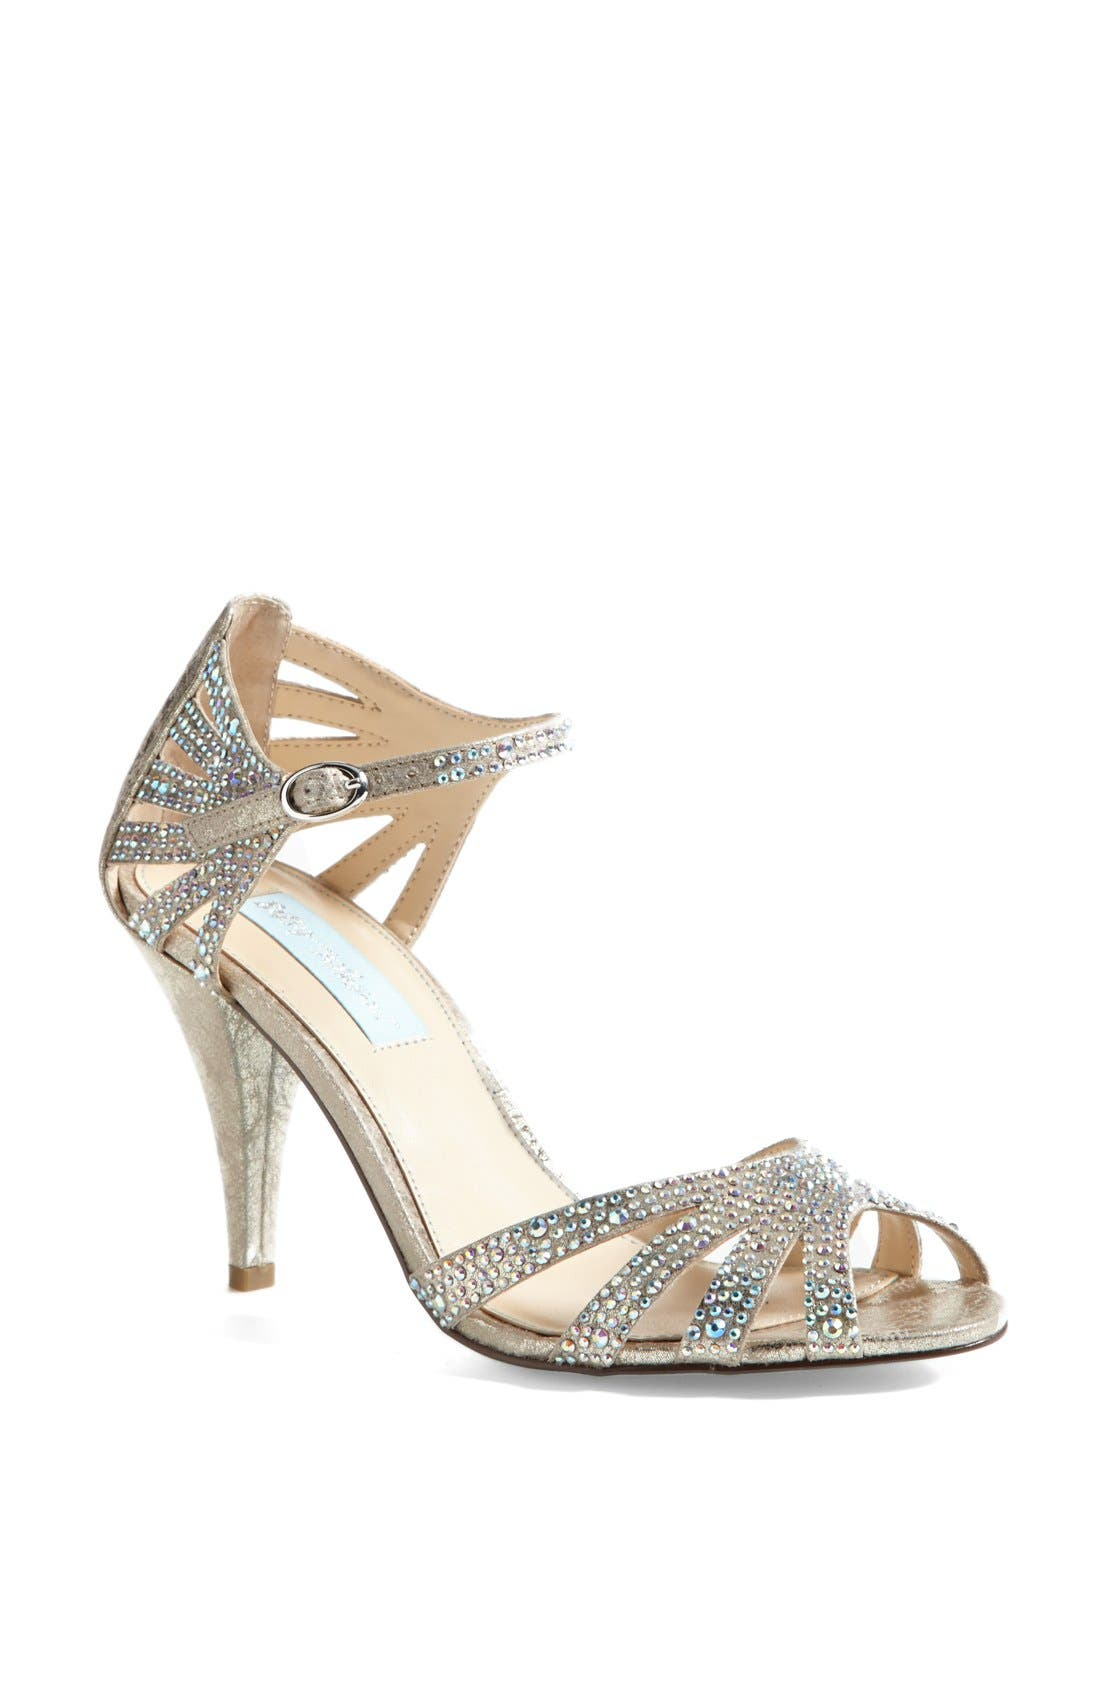 Alternate Image 1 Selected - Betsey Johnson 'Sweet' Sandal